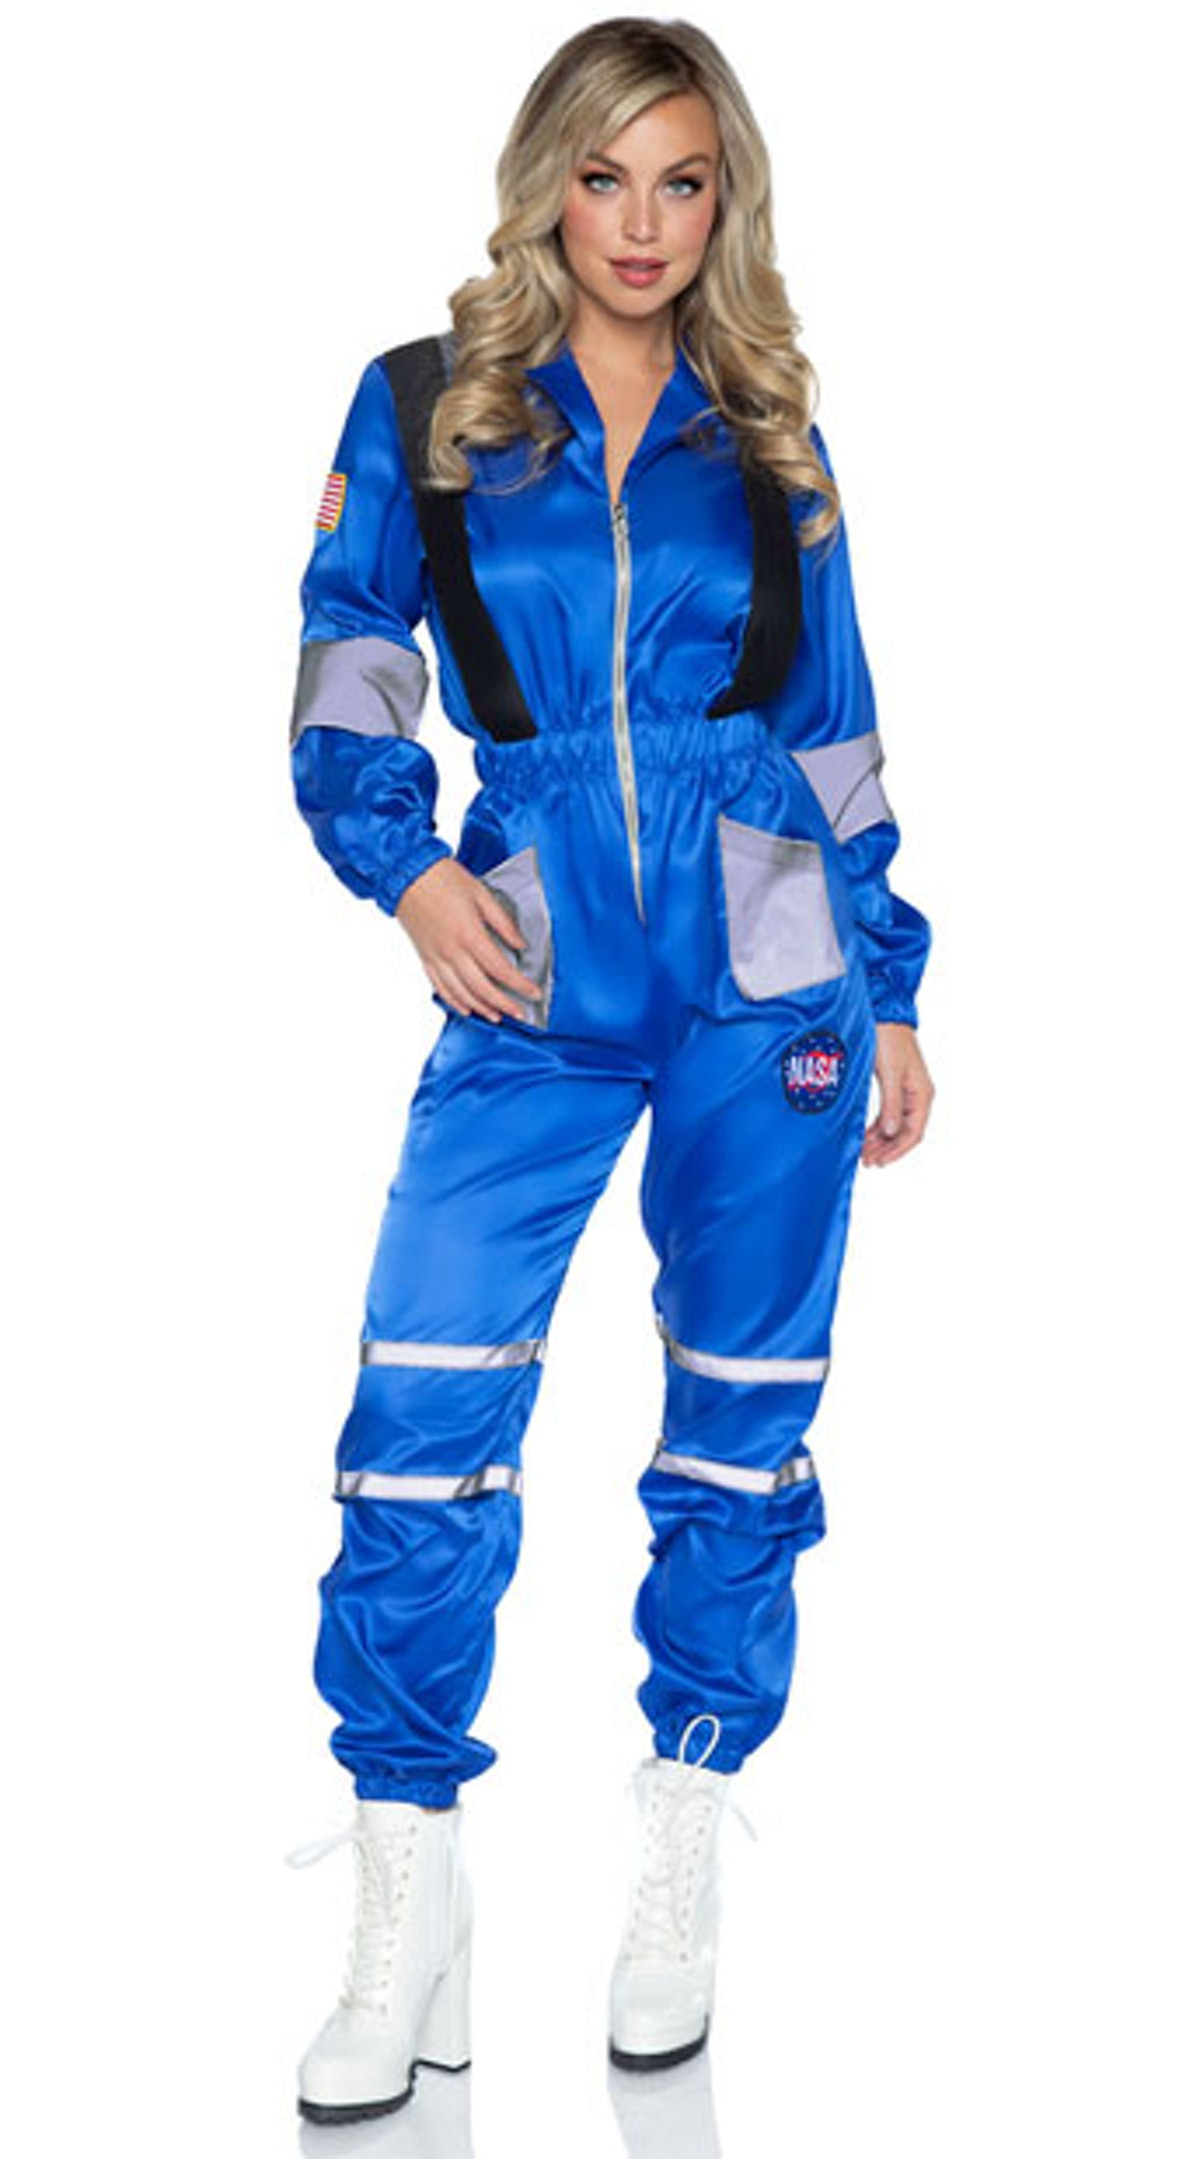 Yandy Sexy Space Chase Costume